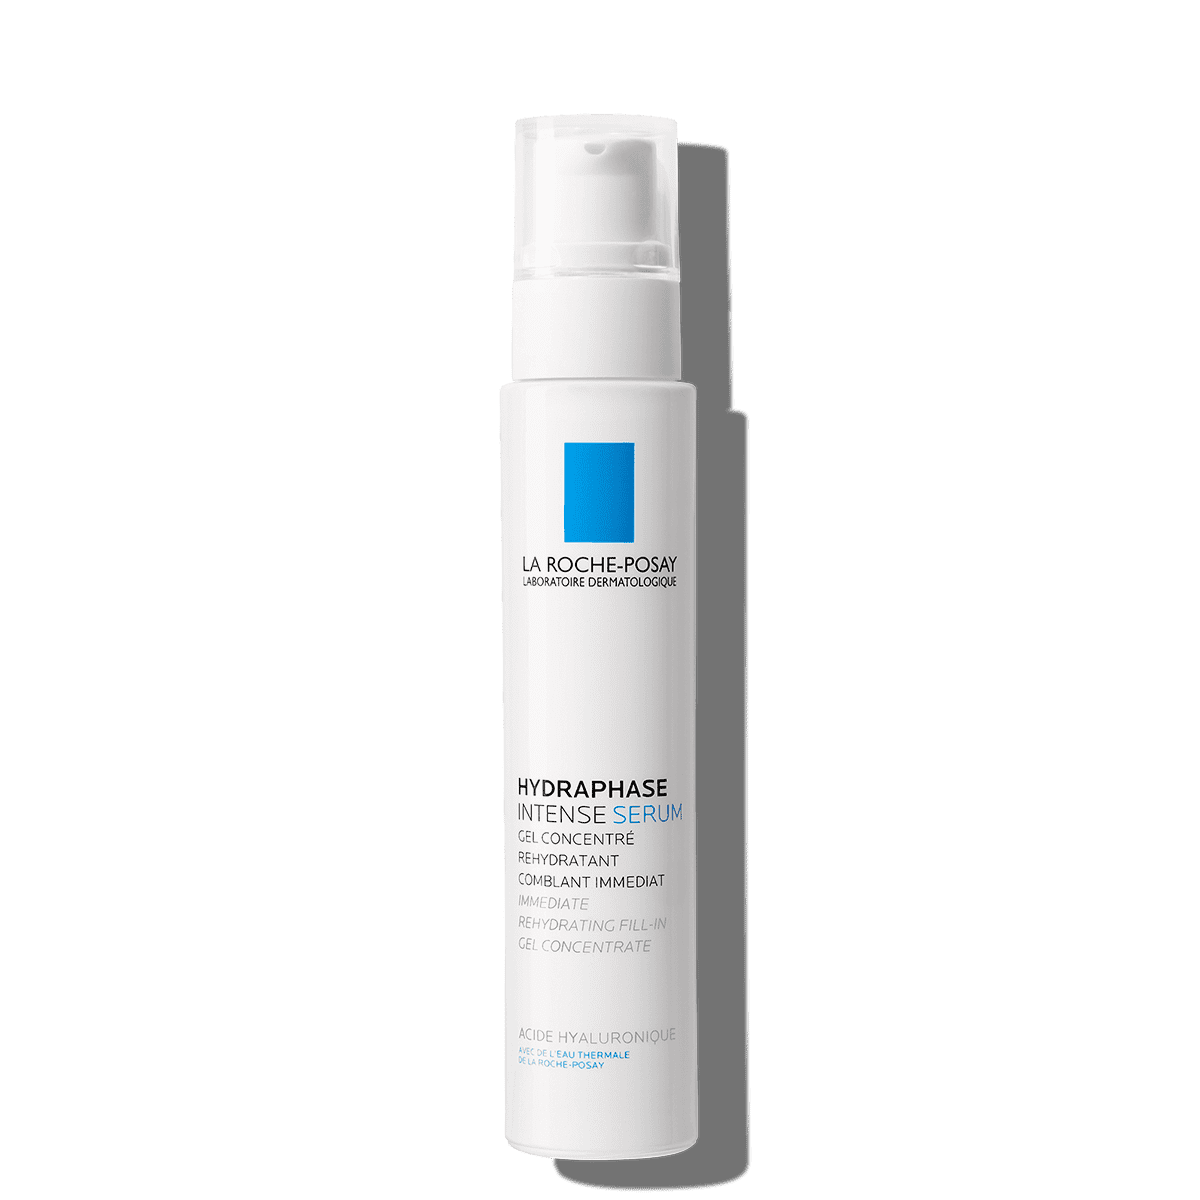 La Roche Posay ProductPage Hydraphase Intense Moisturizing Serum 30ml